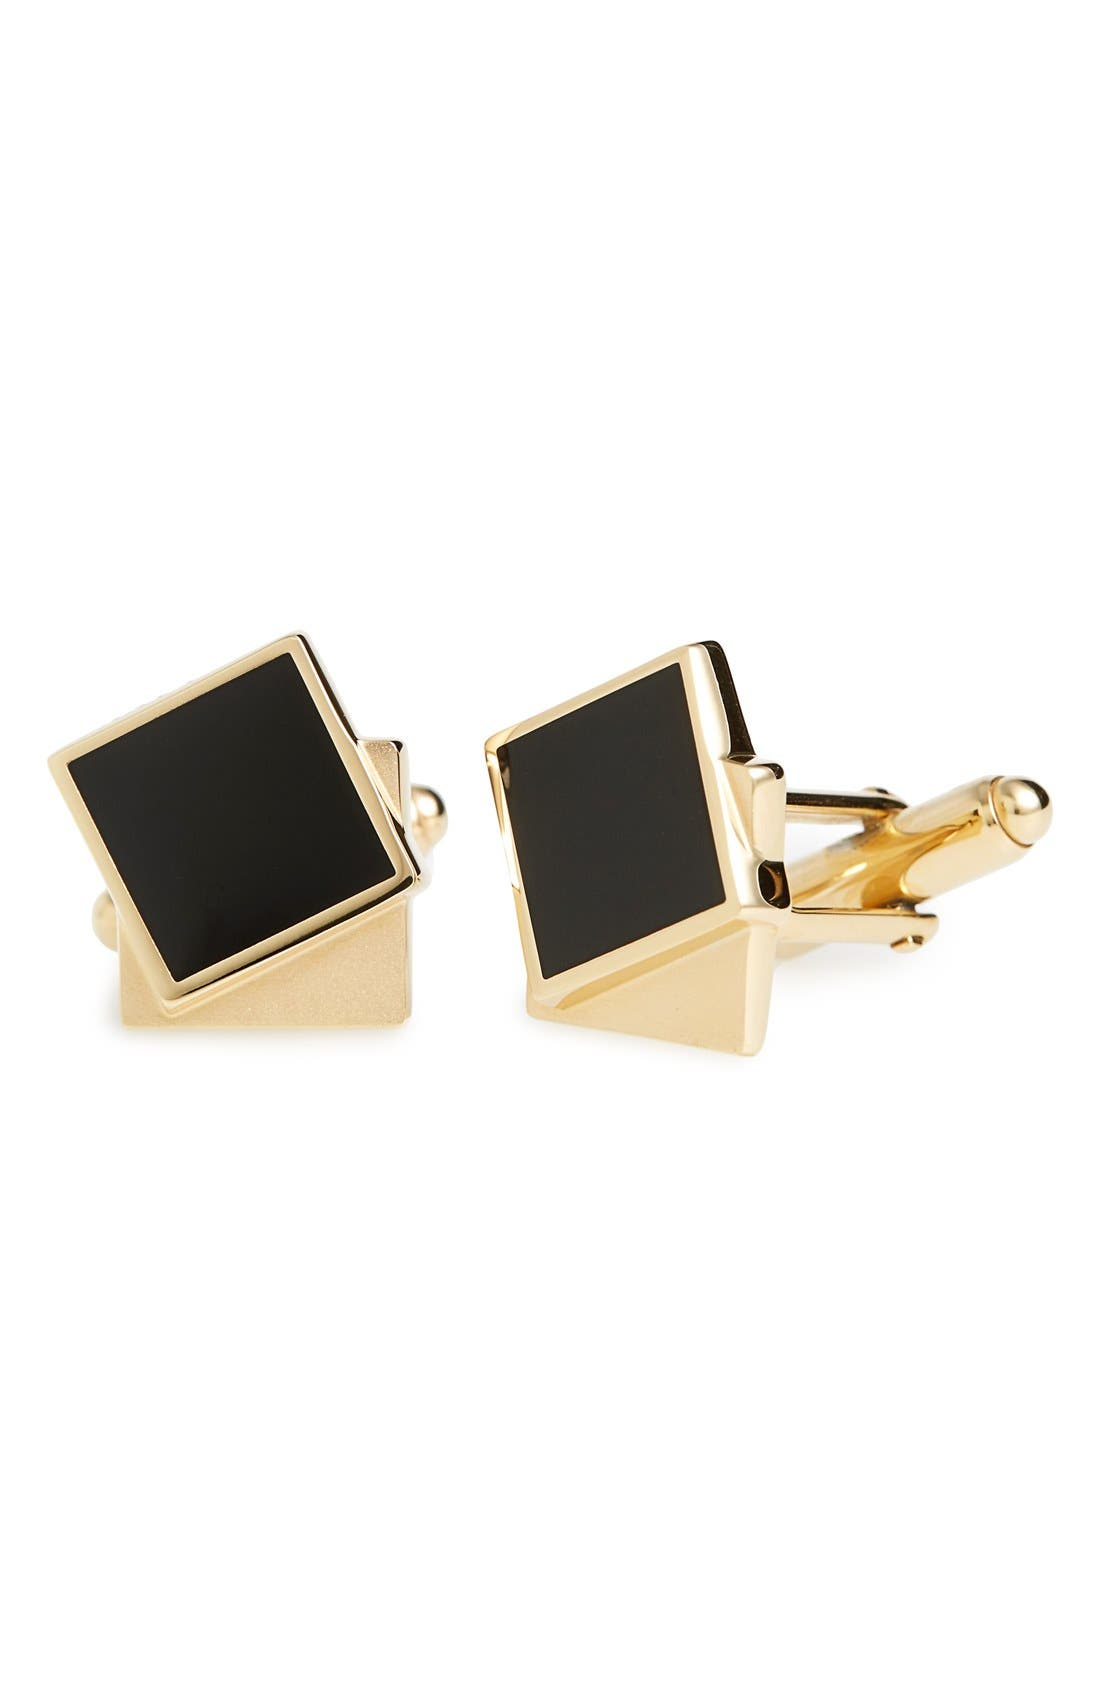 Enameled Double Square Cuff Links,                         Main,                         color, 710